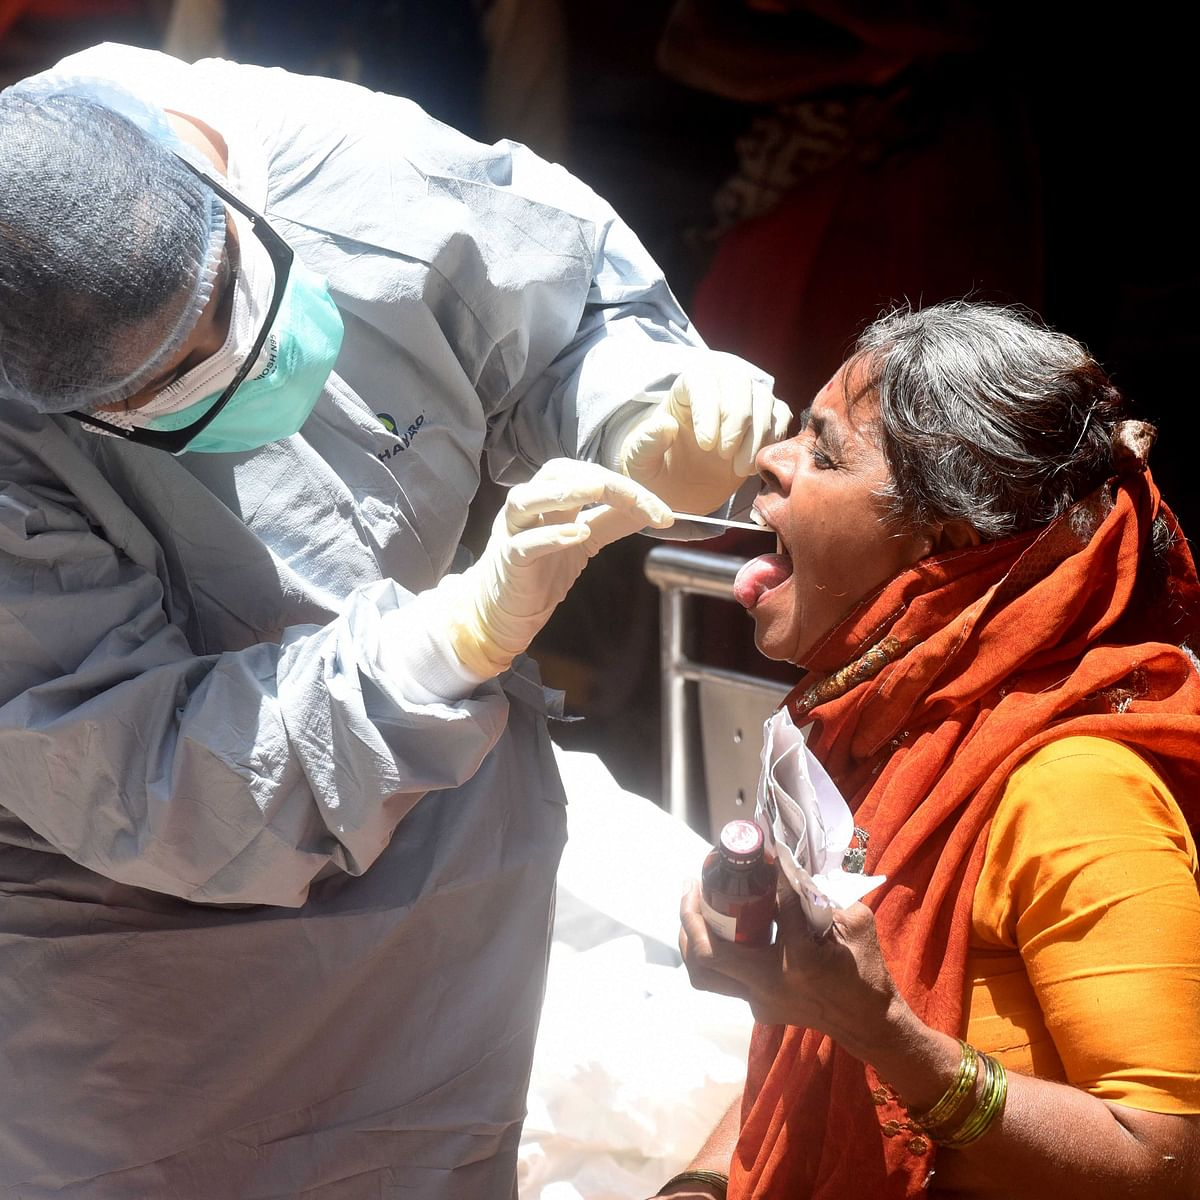 In Pics: Mumbai under coronavirus lockdown -- here's how the city looked on Thursday